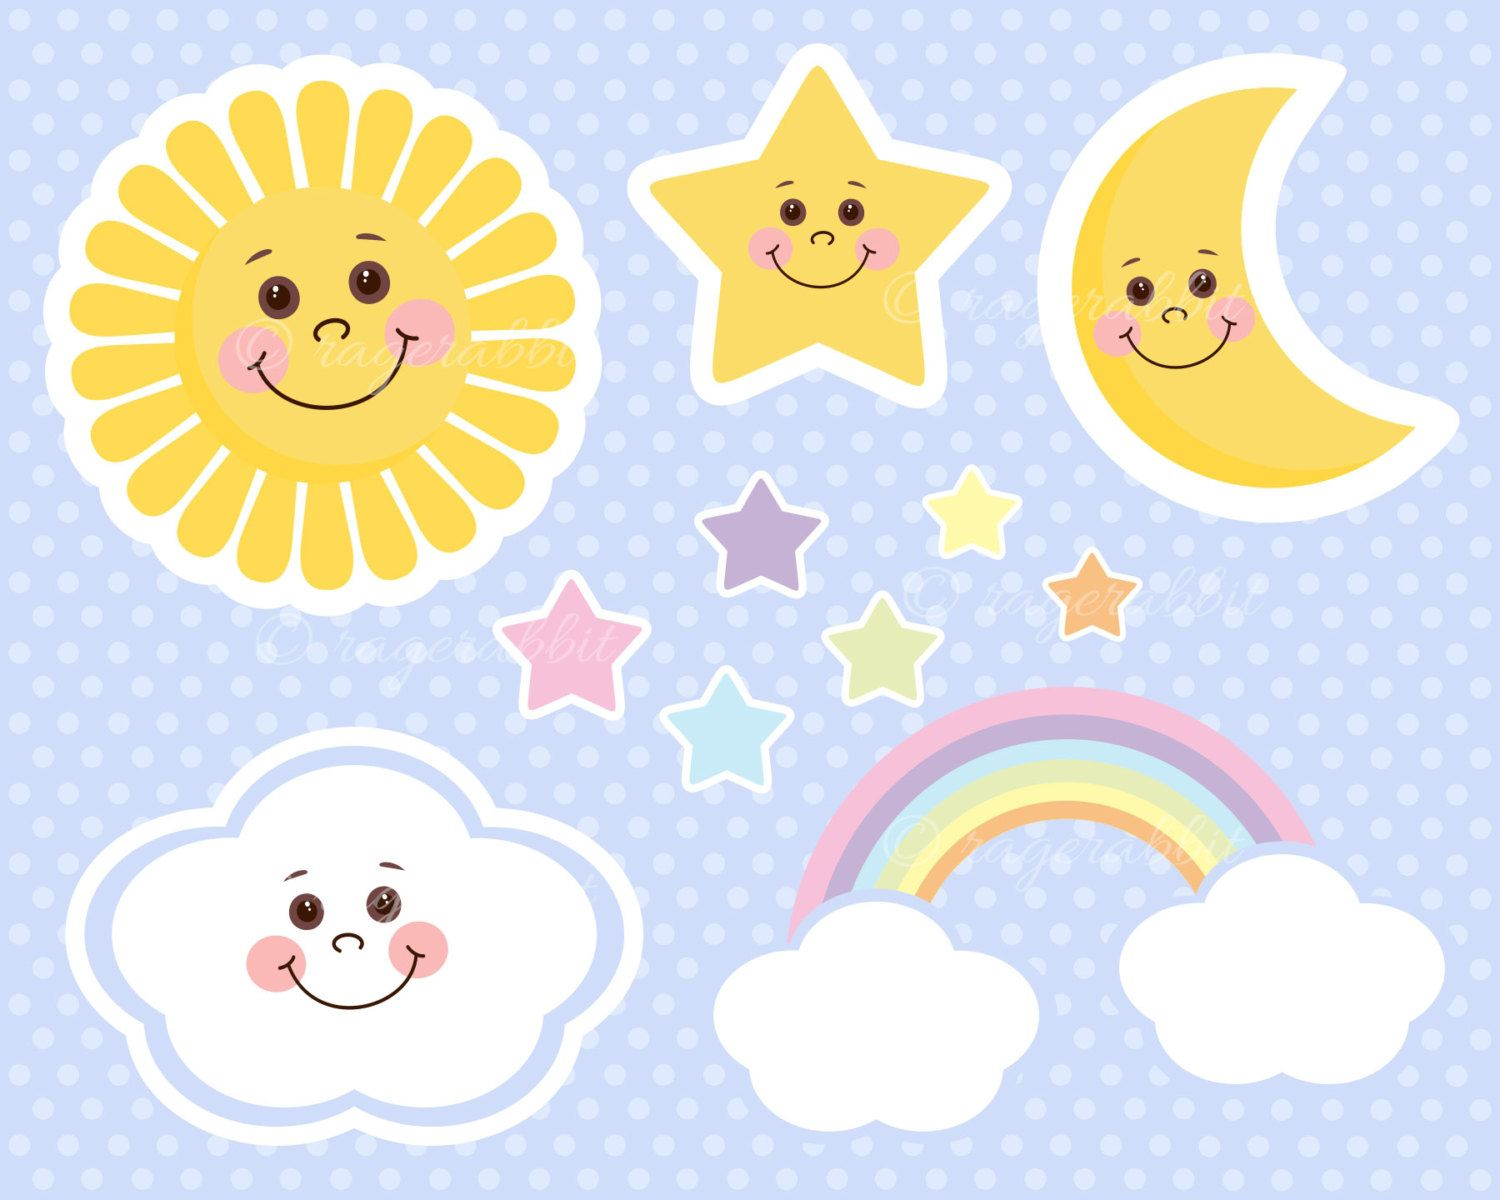 Cu sun moon and stars watercolor clipart clip freeuse library Sun Baby Vector Illustrations, Clouds, Rainbow, Stars, Moon ... clip freeuse library